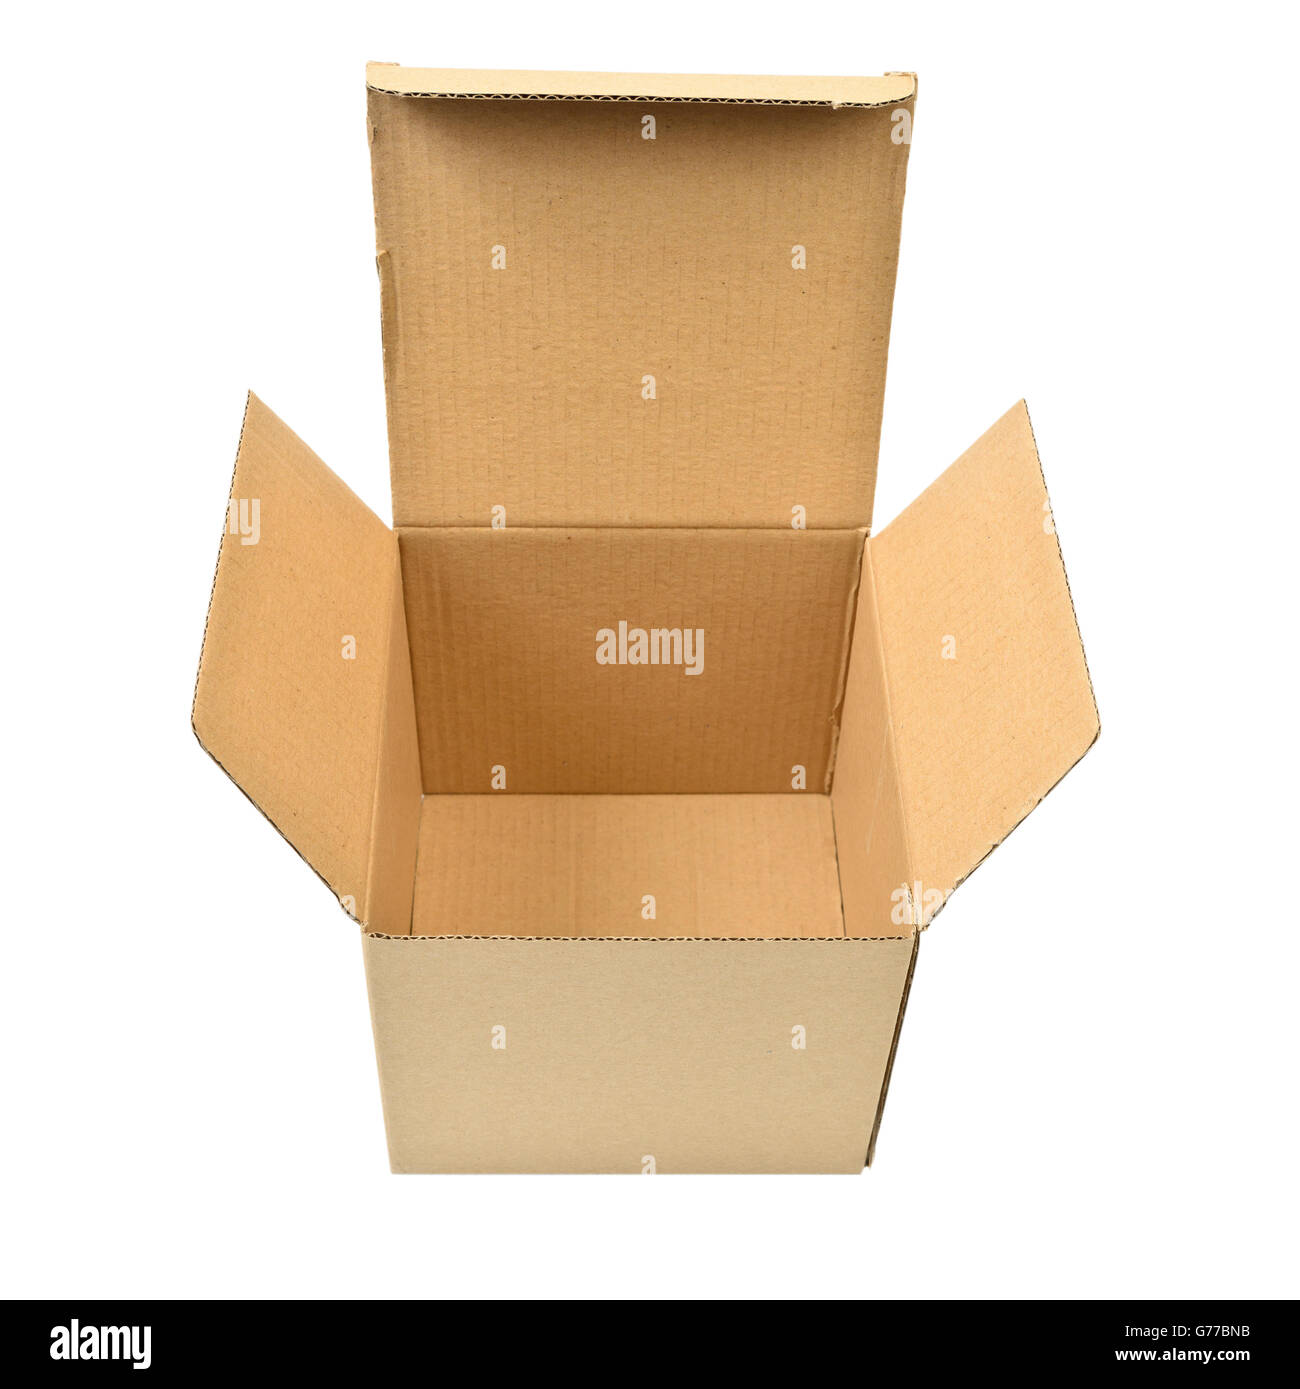 Single open cardboard  box over white background - Stock Image